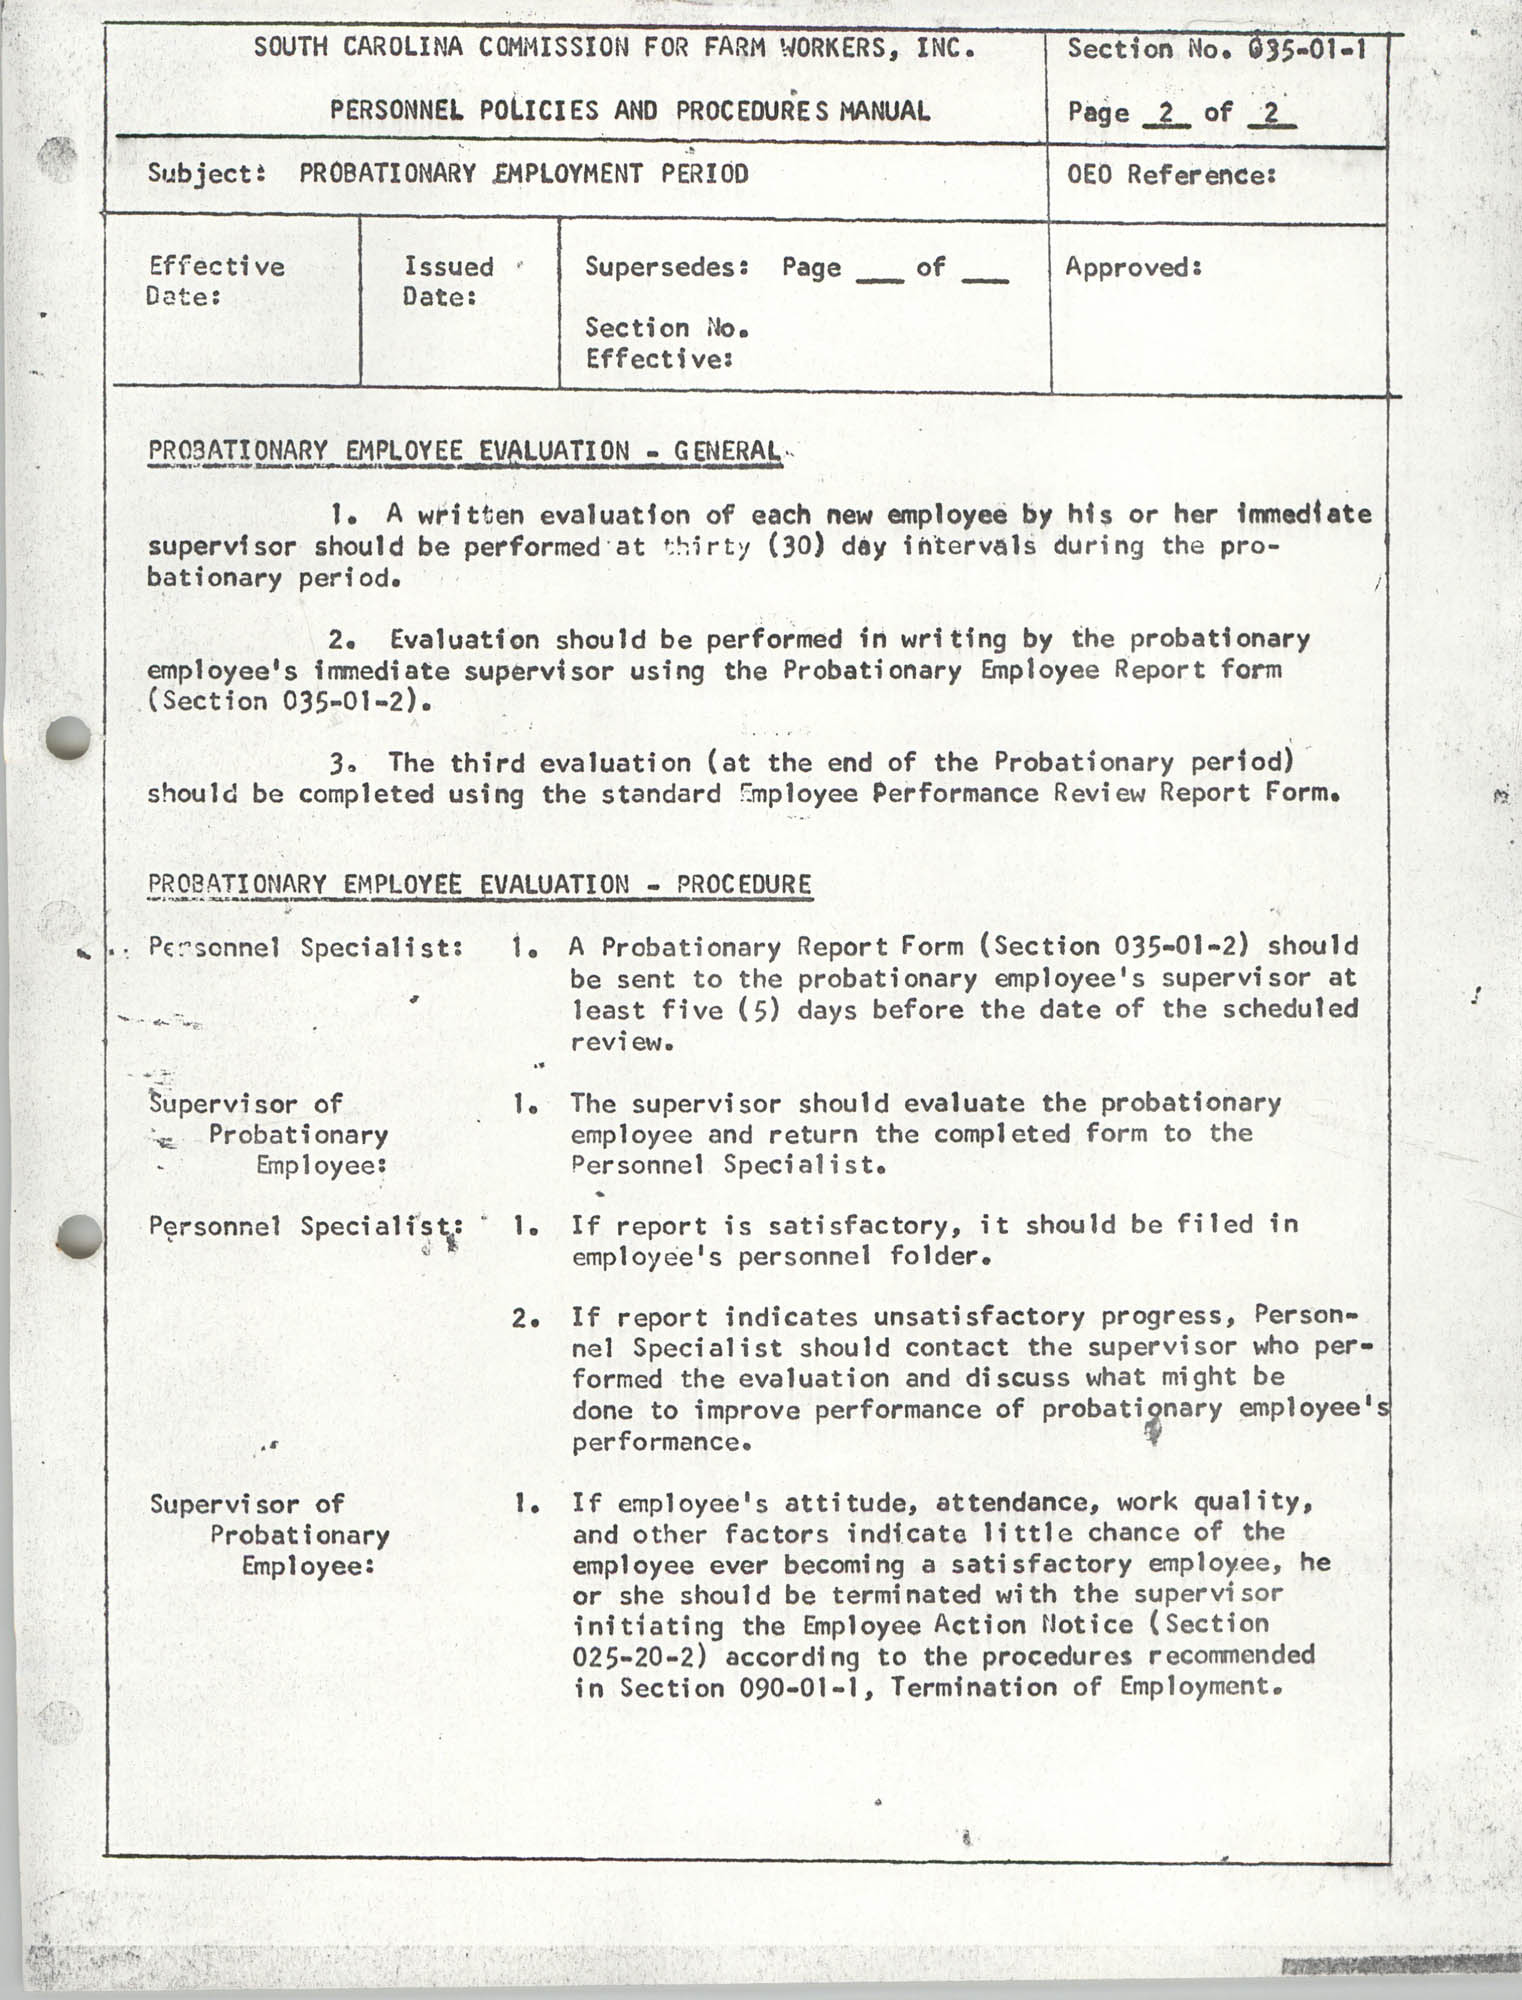 Personnel Policies and Procedures Manual, Section No. 035-01-1, Page 2